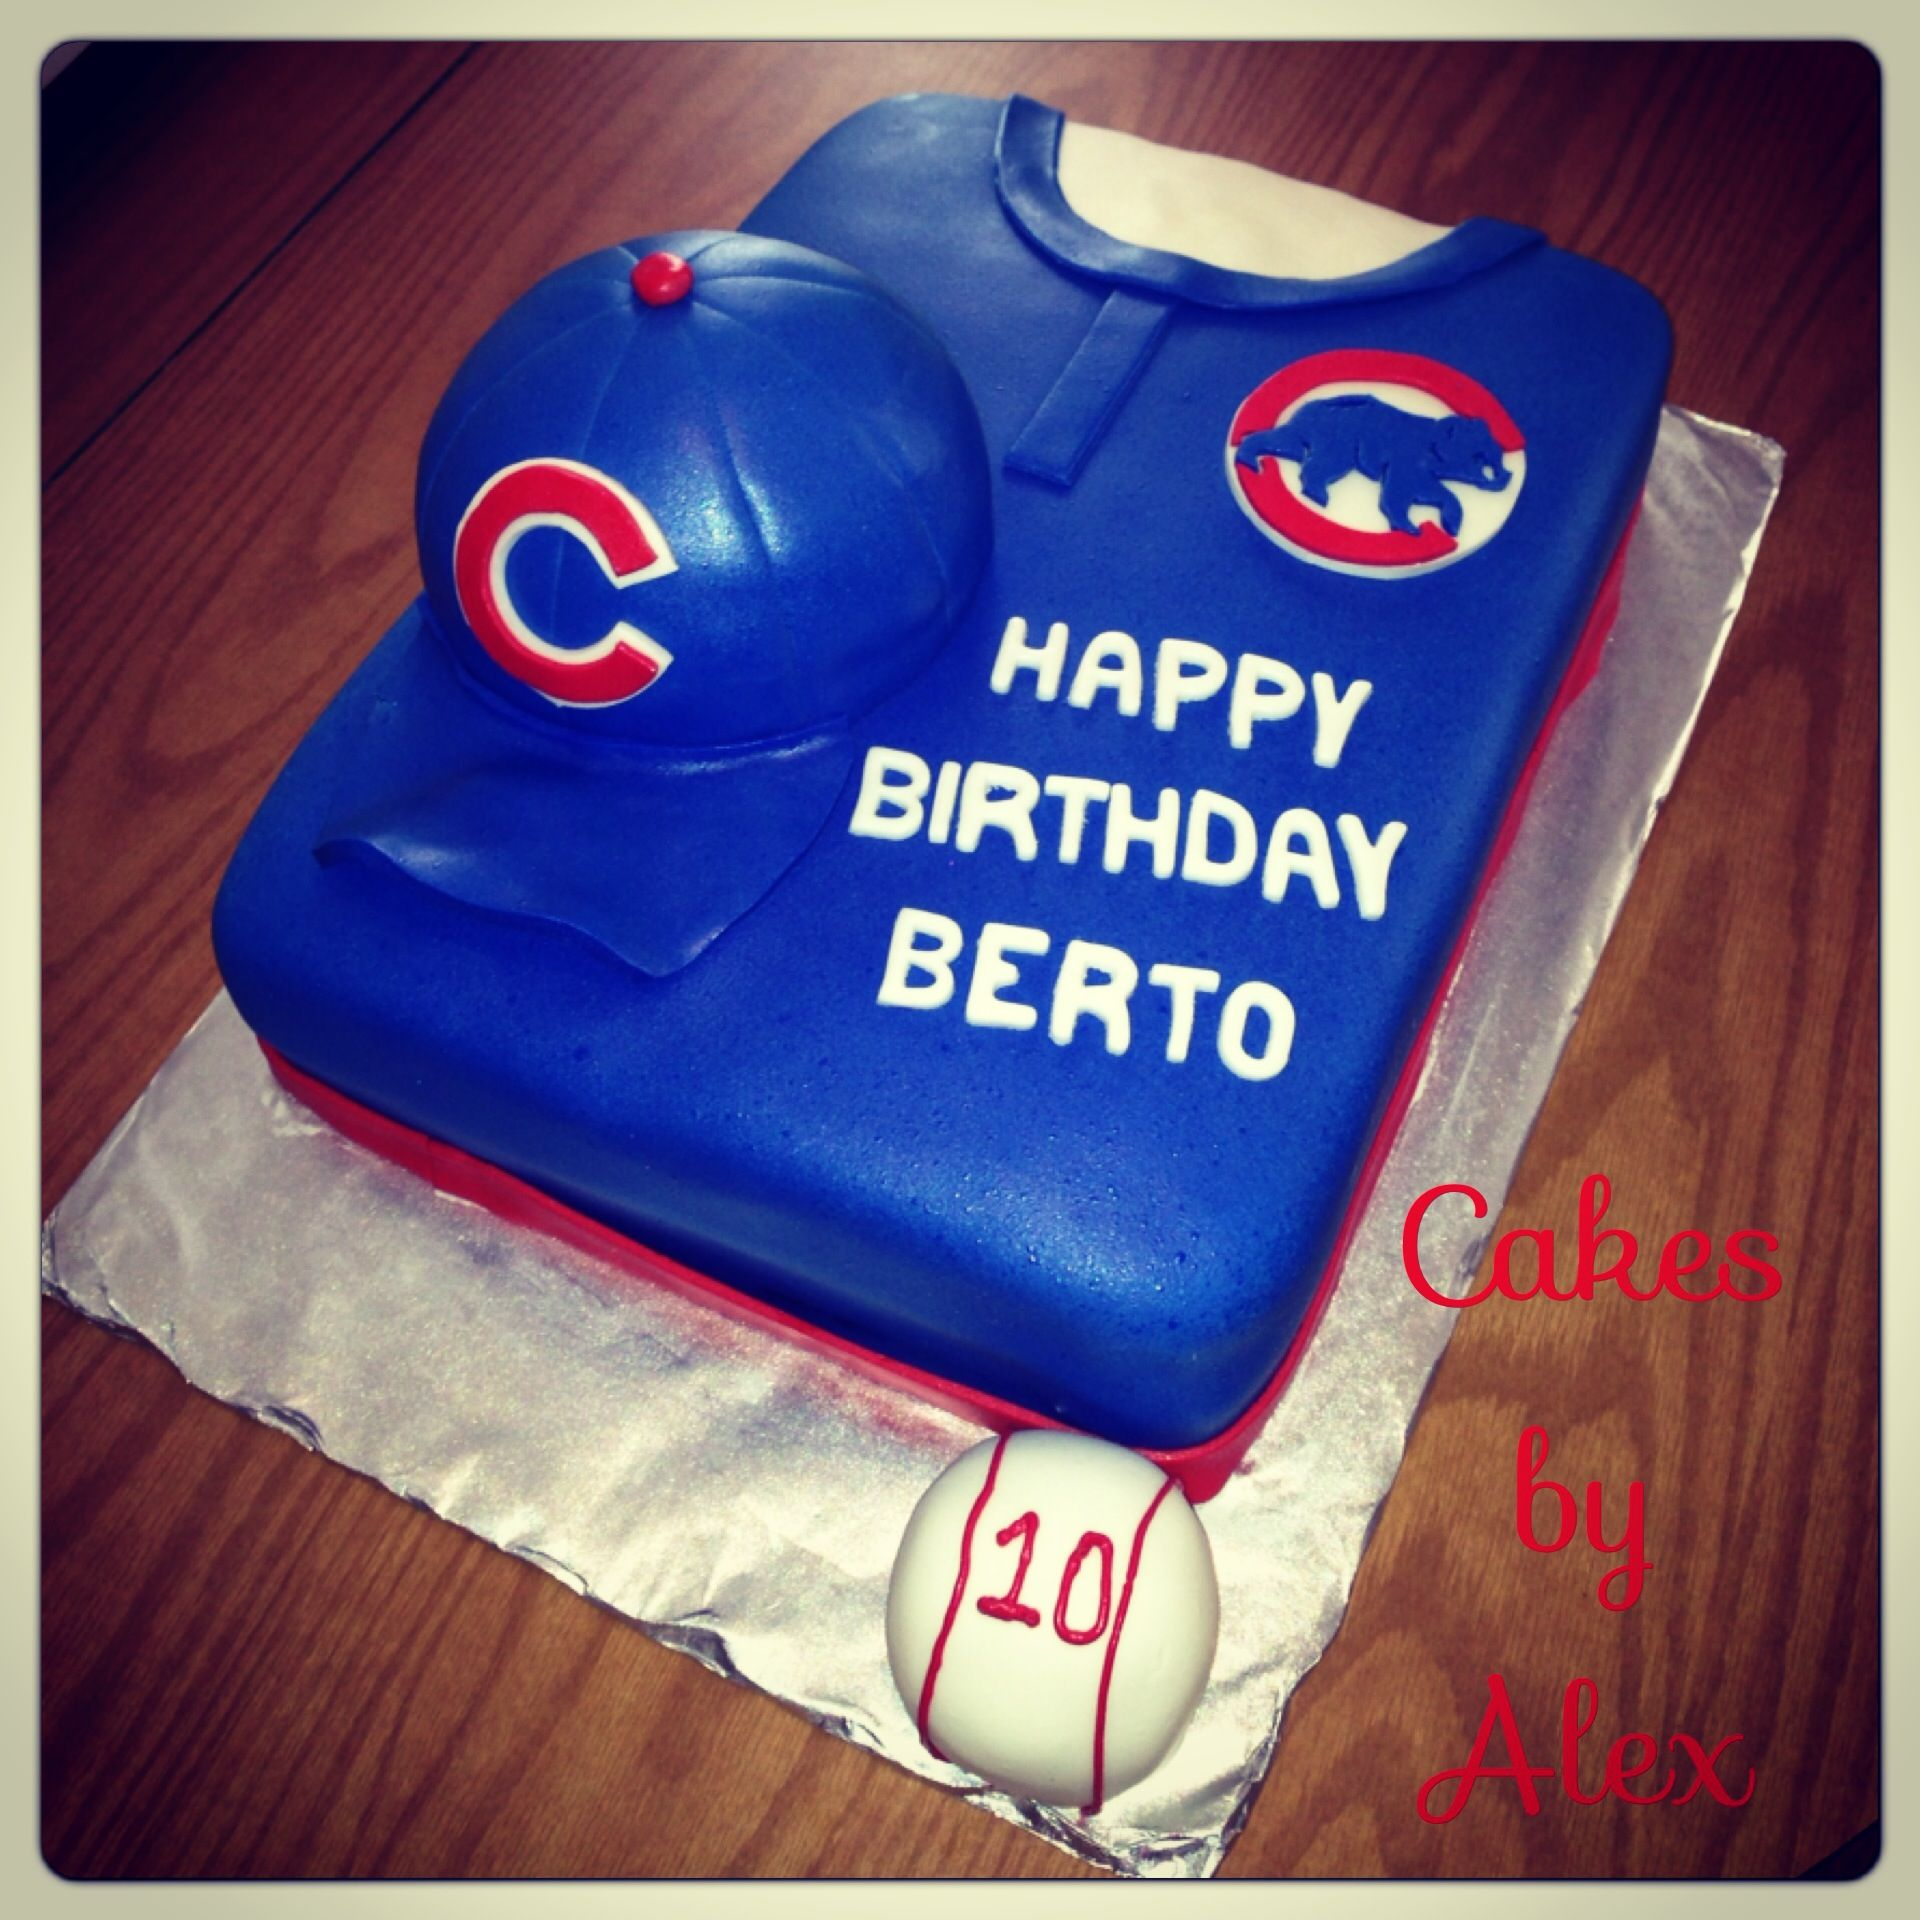 Chicago Cubs Birthday Cake Birthday Cakes Cubs Cake 40th